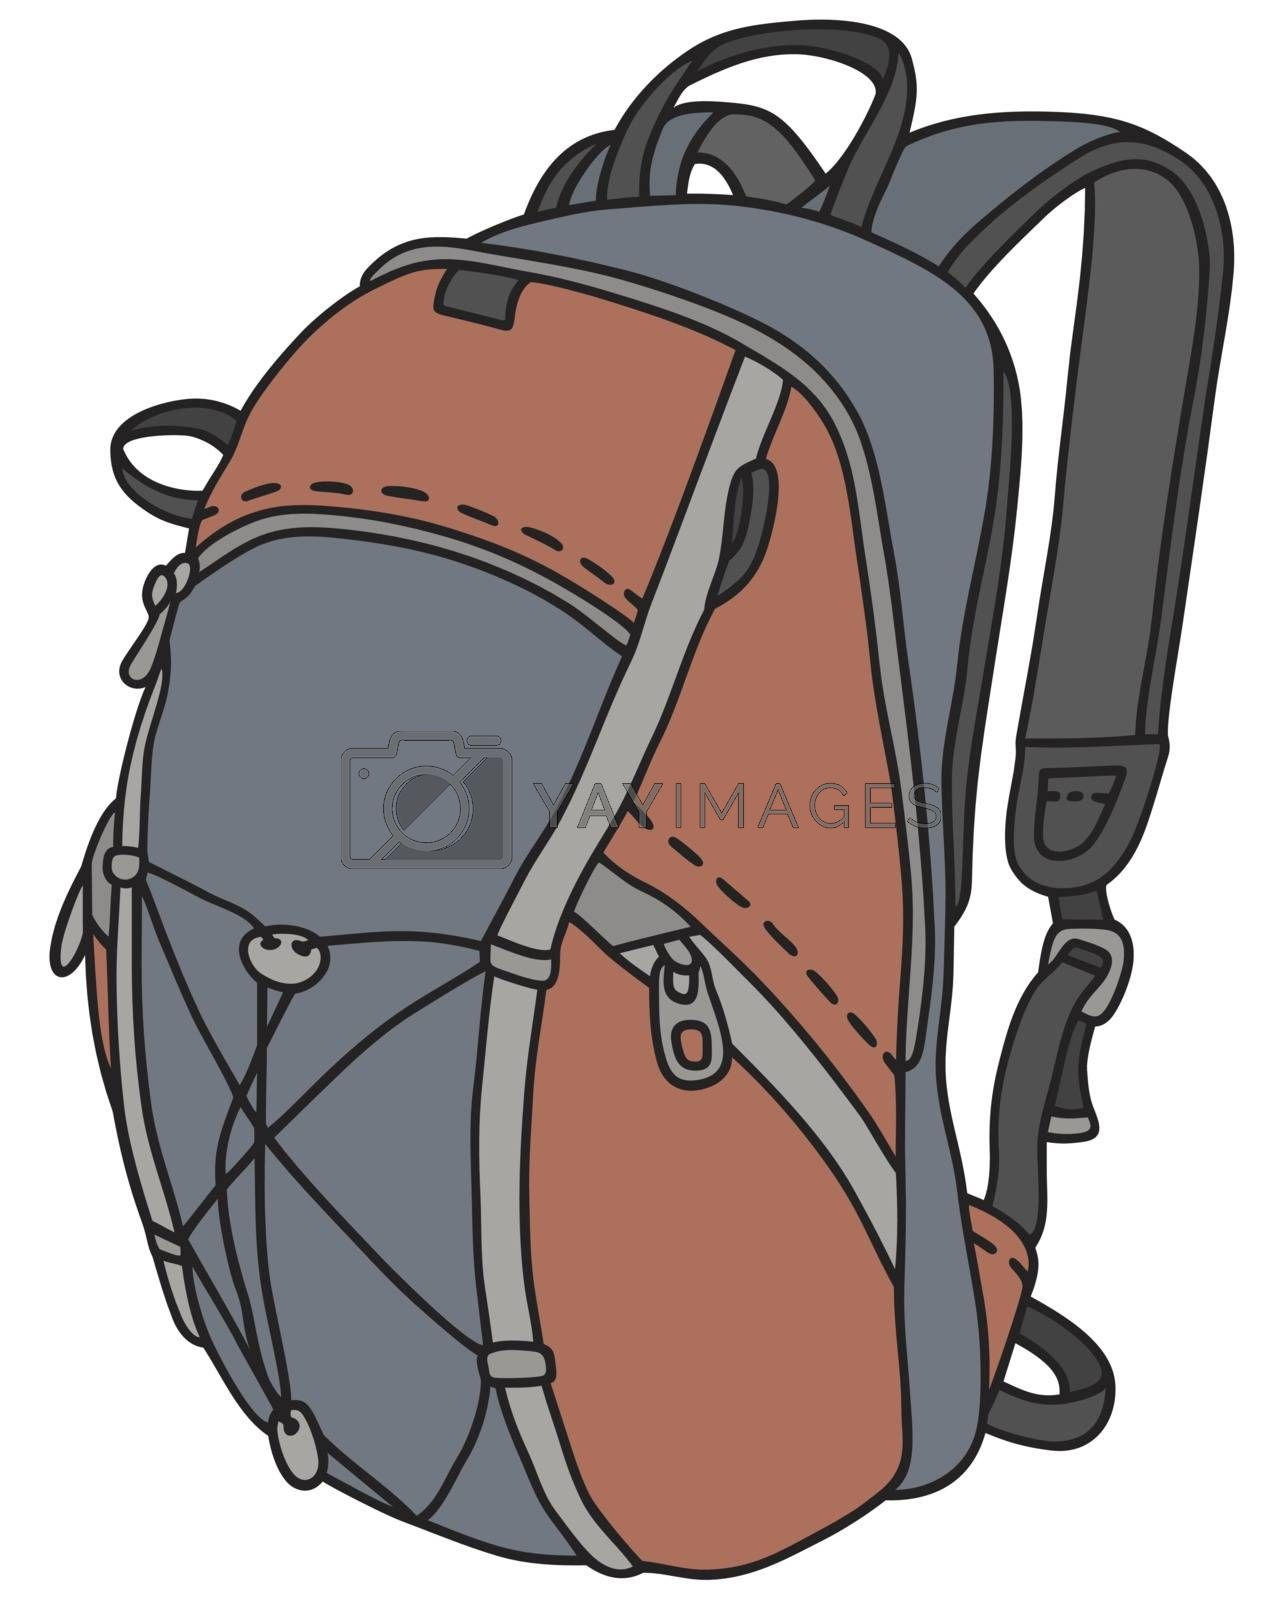 Hand drawing of a red and blue sports bag